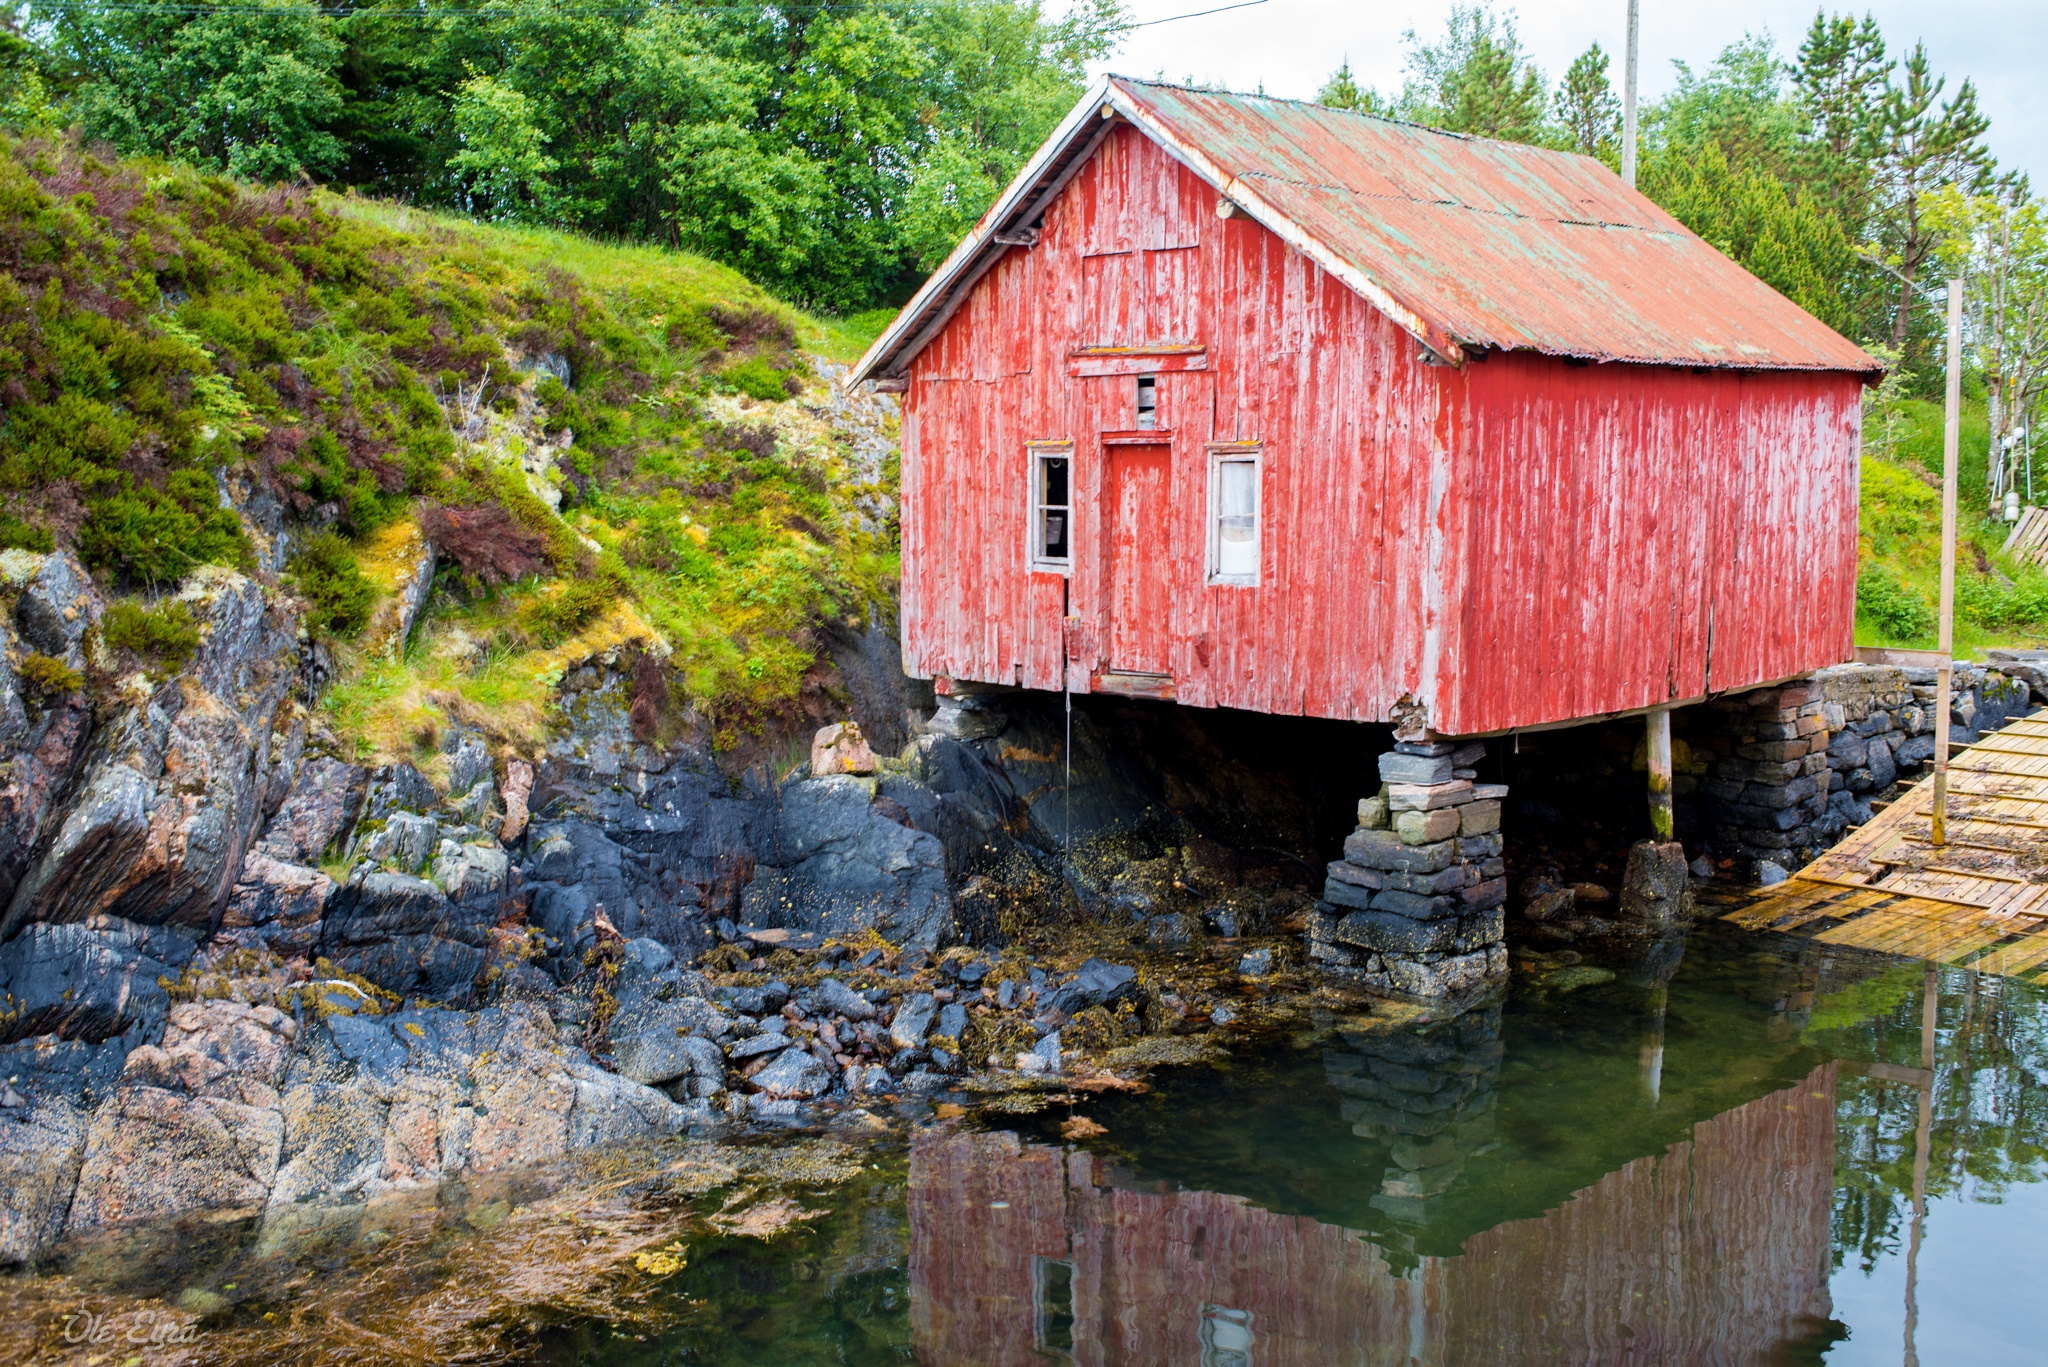 Old Boat House by Ole Morten Eyra